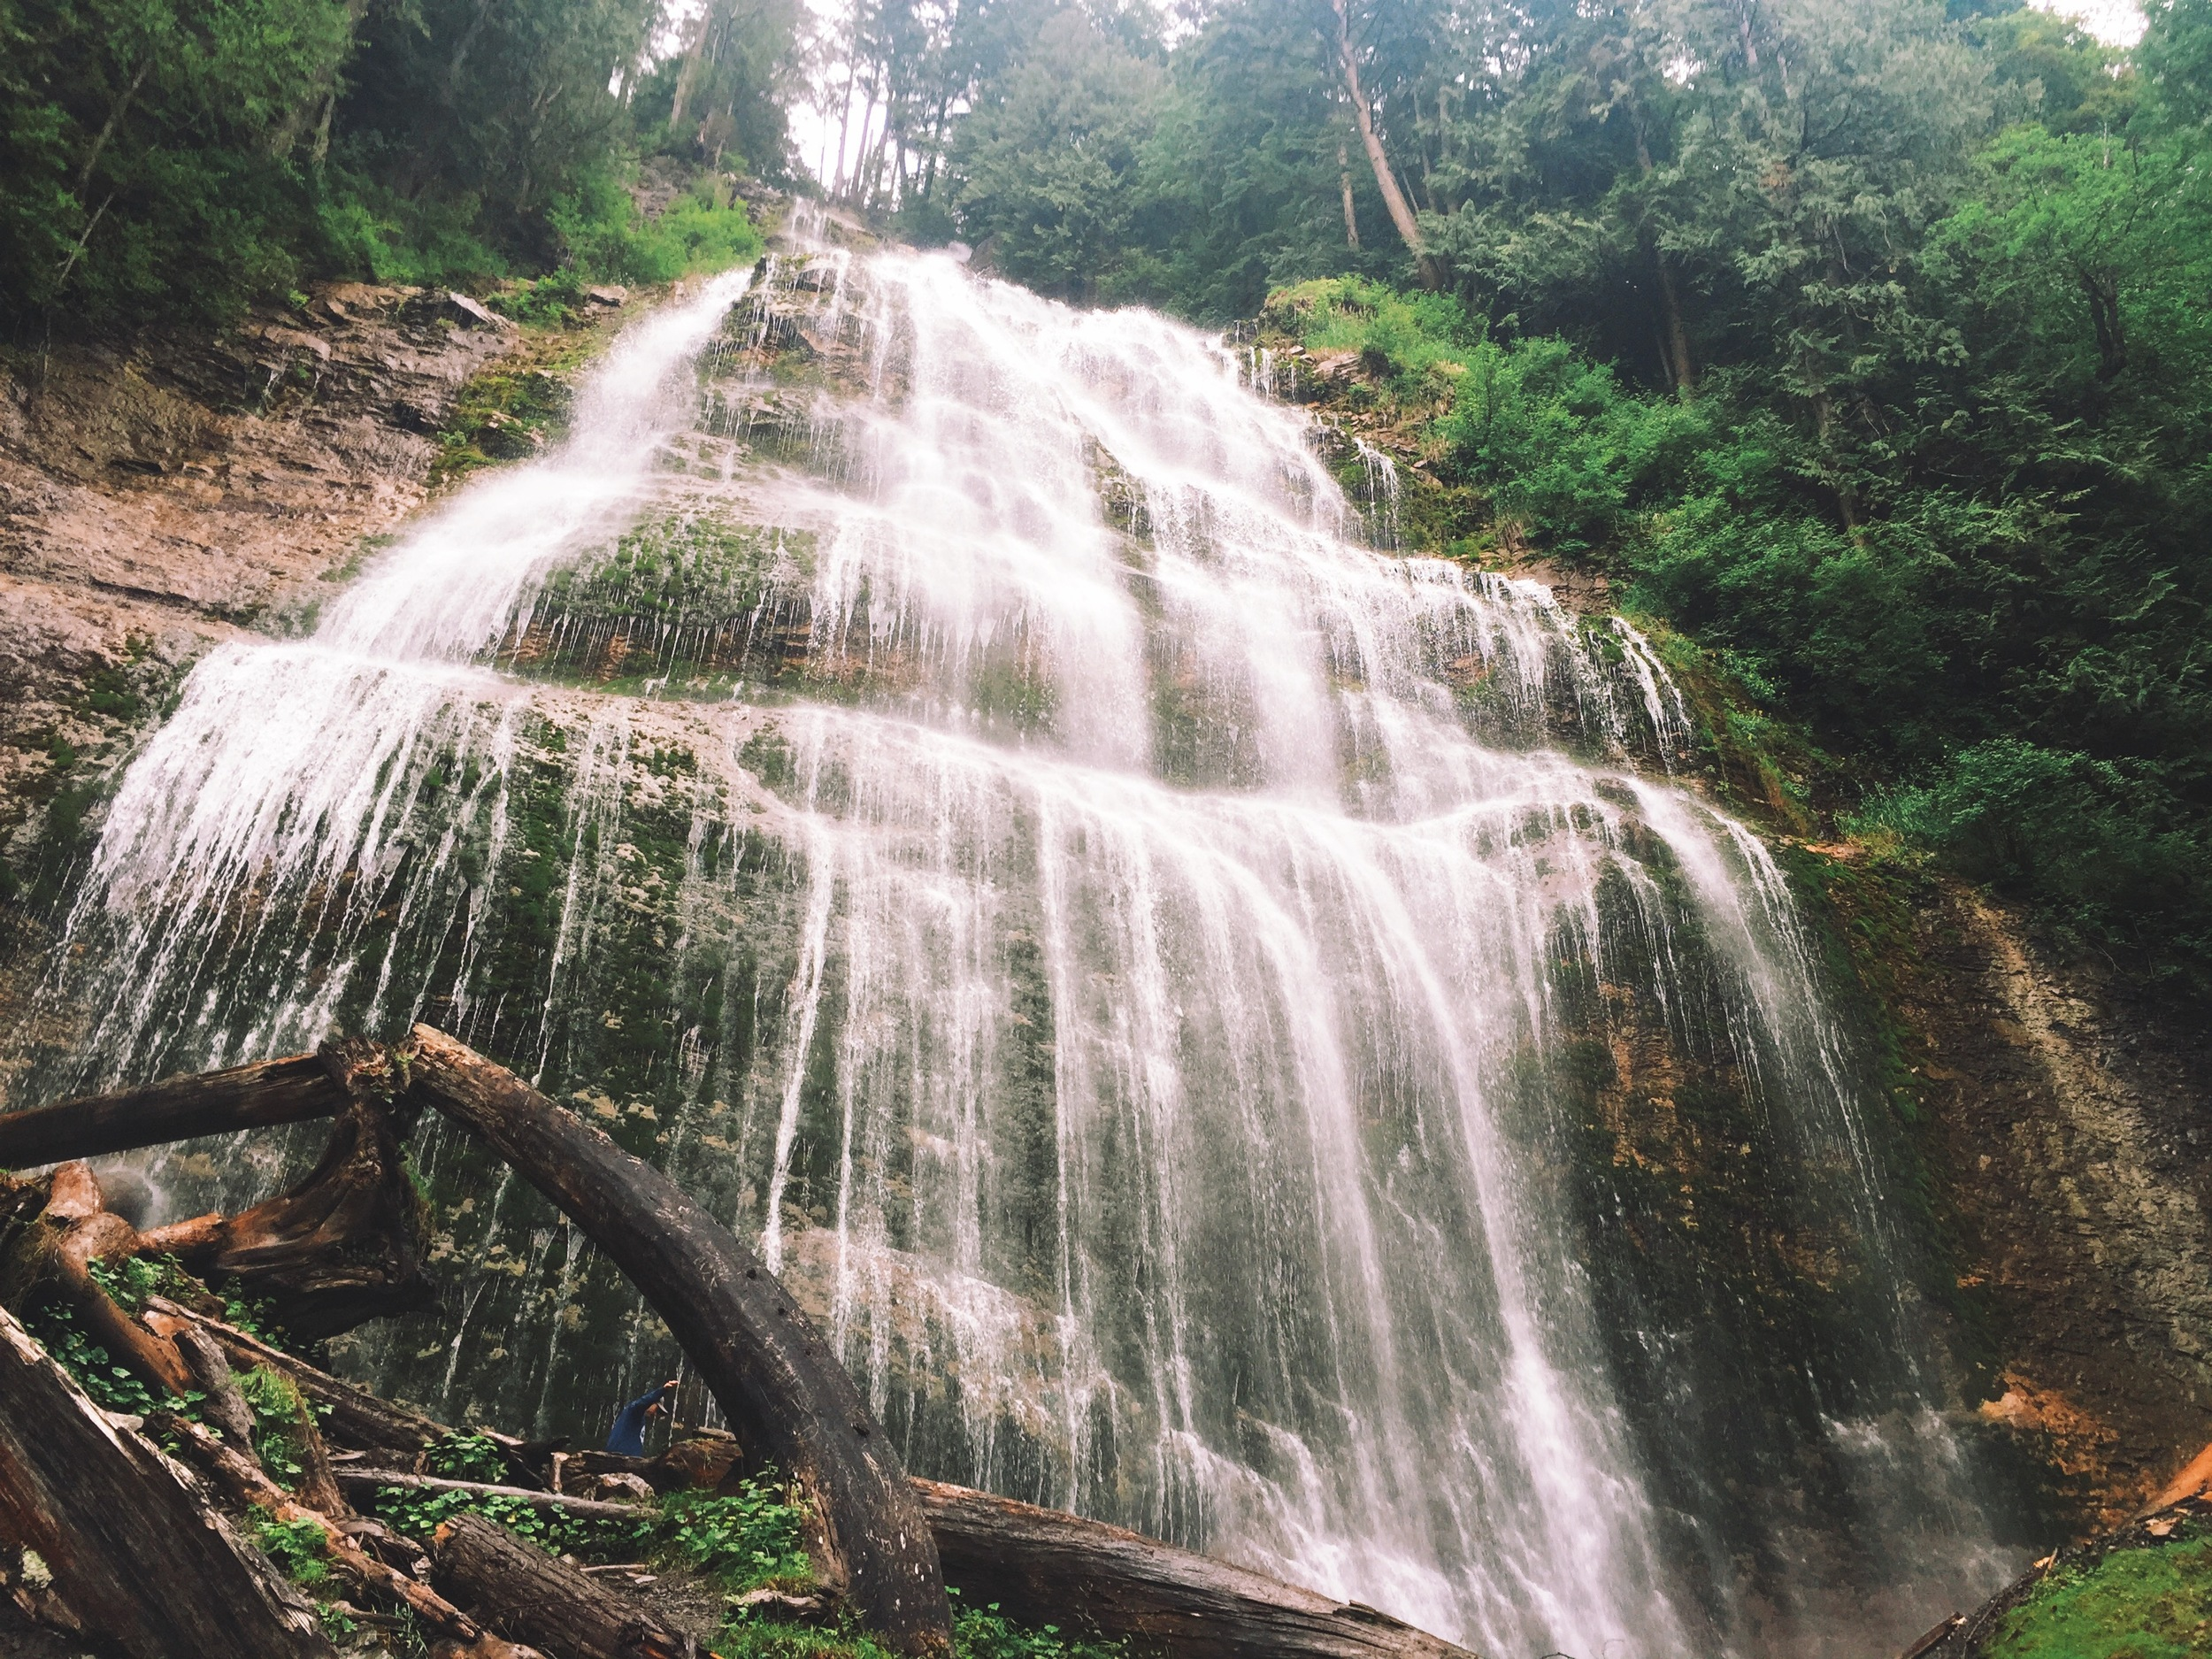 Bridal Falls - Just outside of Chilliwack, BC - Can you spot Luca?